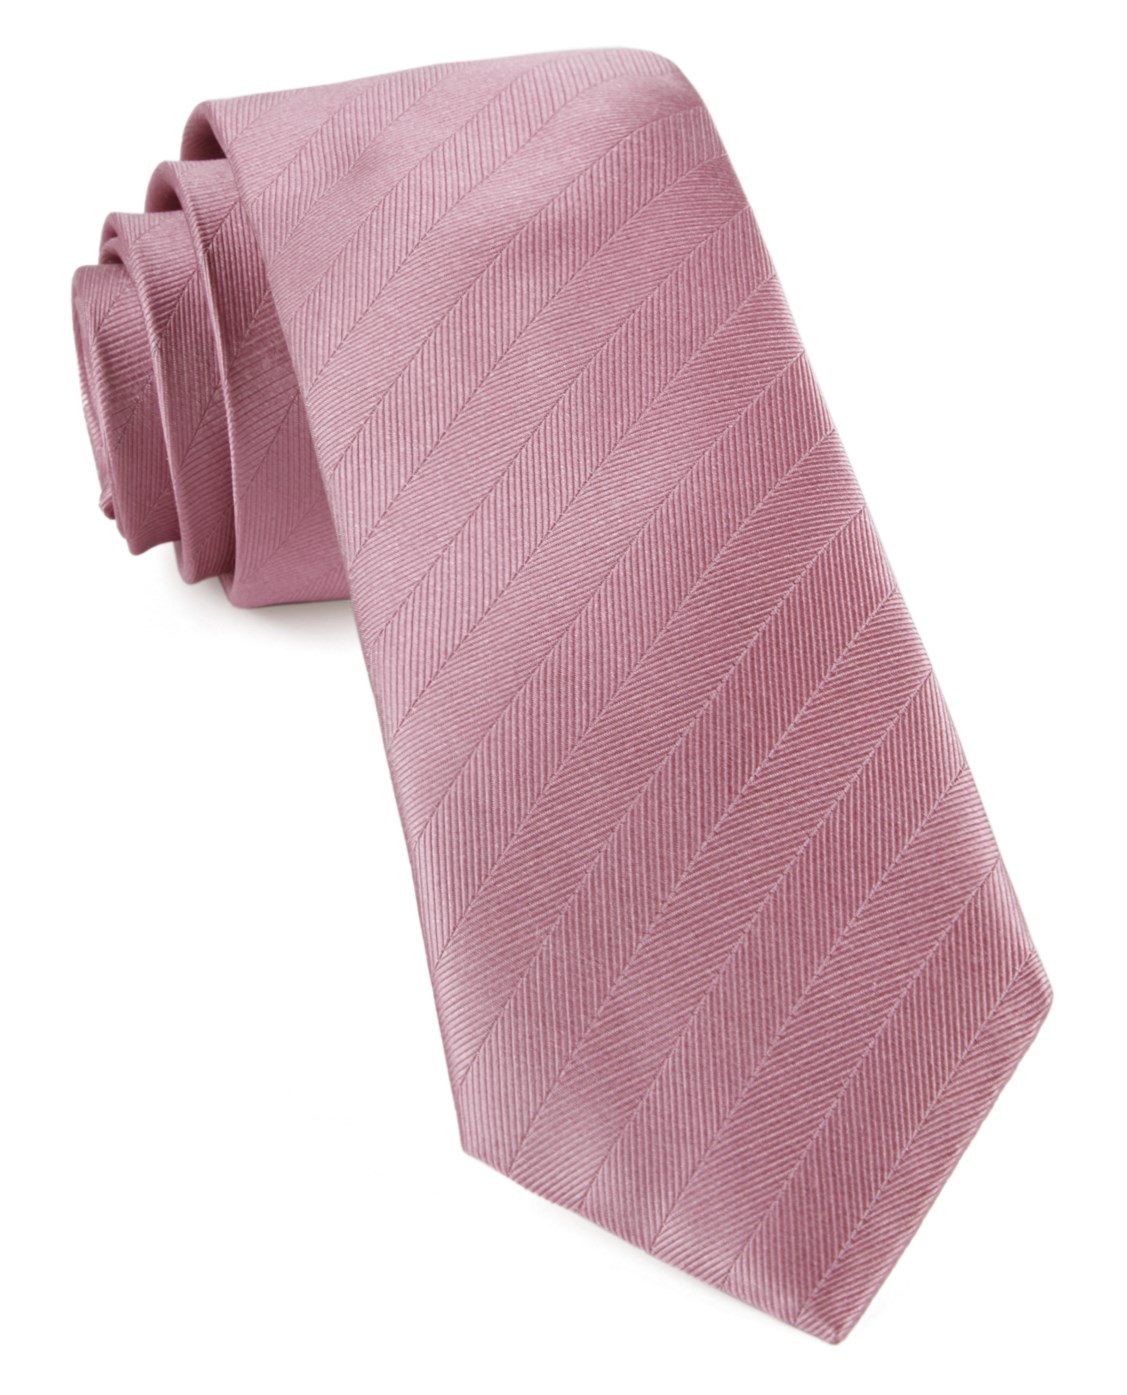 c24f5f9182 Dusty Rose Herringbone Vow Tie - Dusty Rose Herringbone Vow Tie primary  image ...